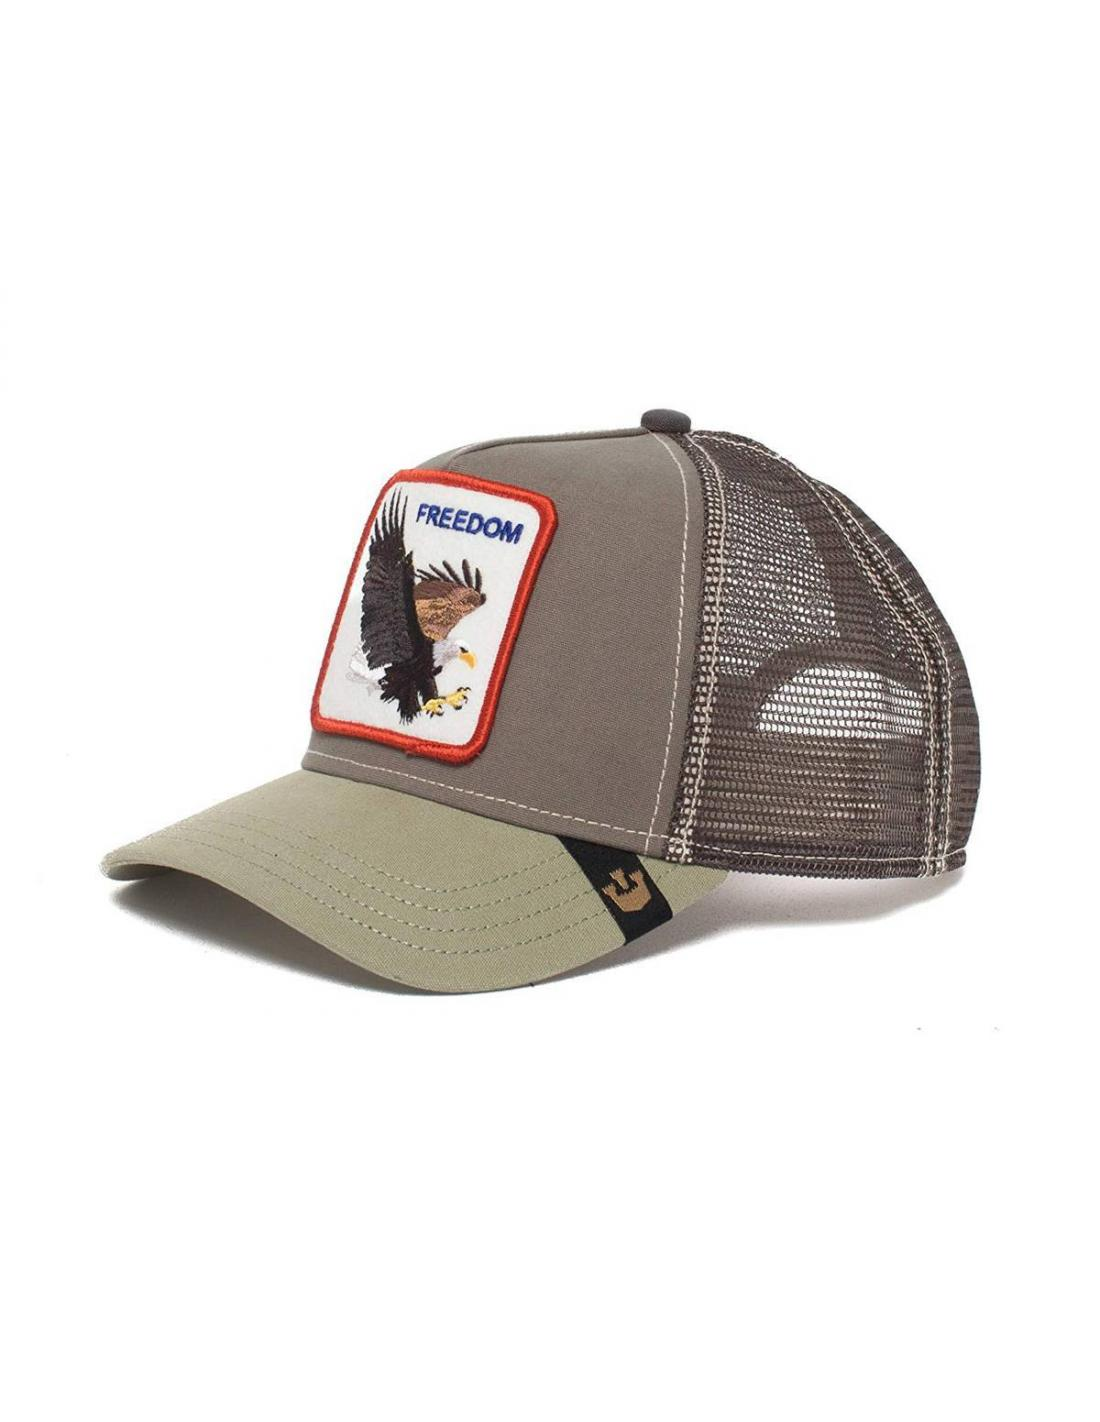 Goorin Bros Freedom Black Animal Farm Trucker Hat ... 33946f2634c2